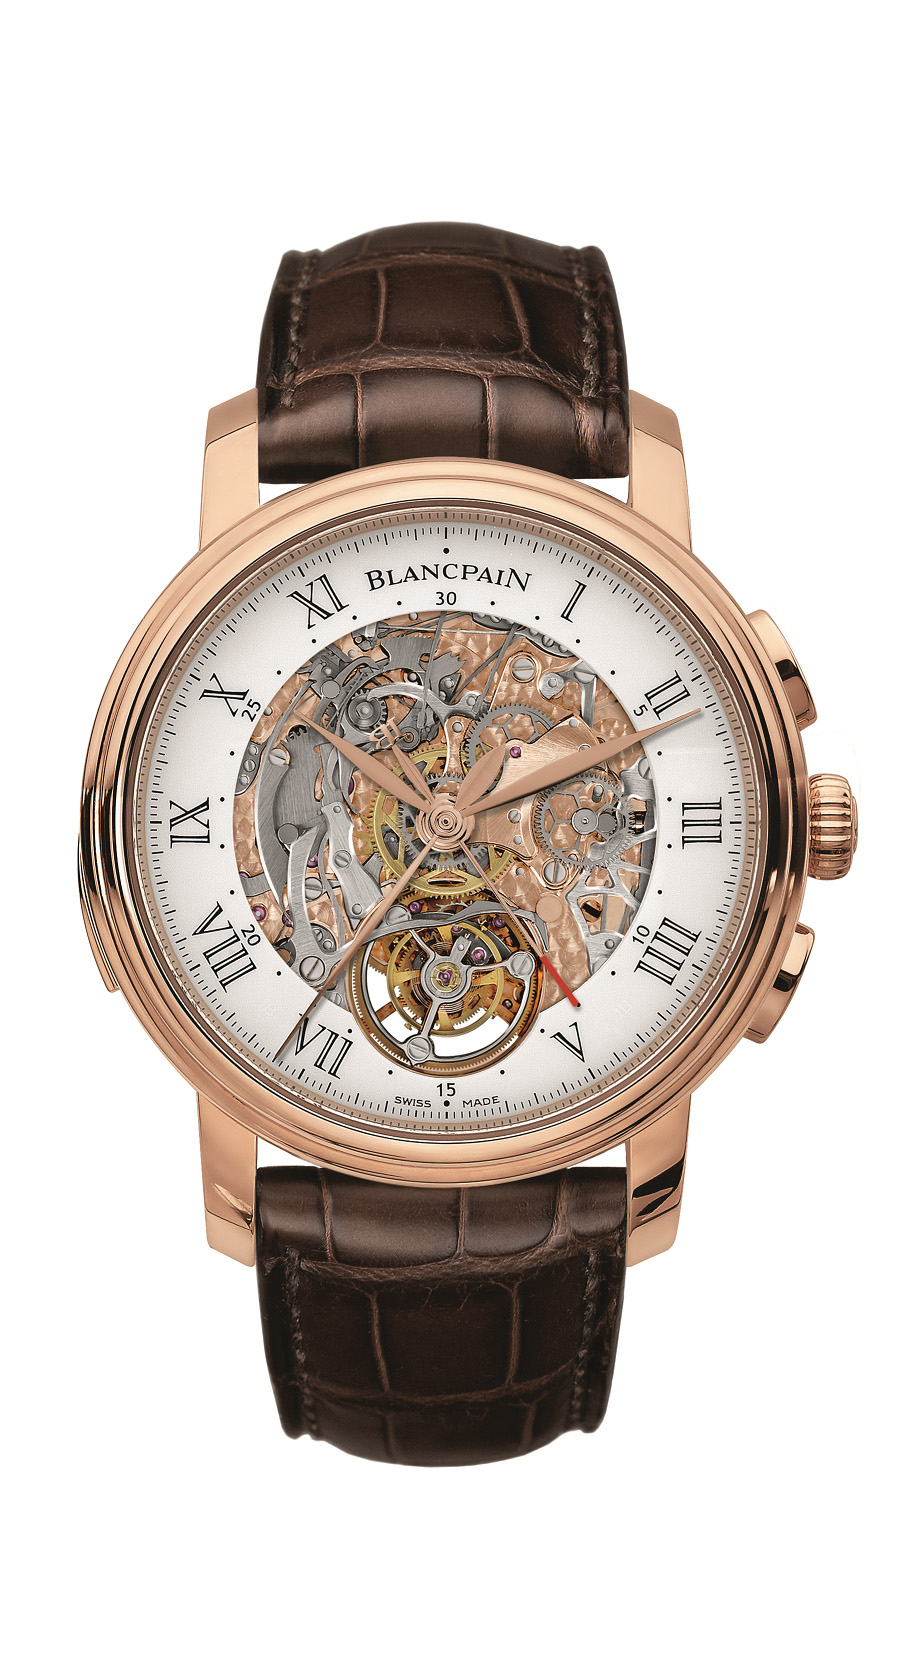 Blancpain Carrousel Minute repeater Chronograph Flyback